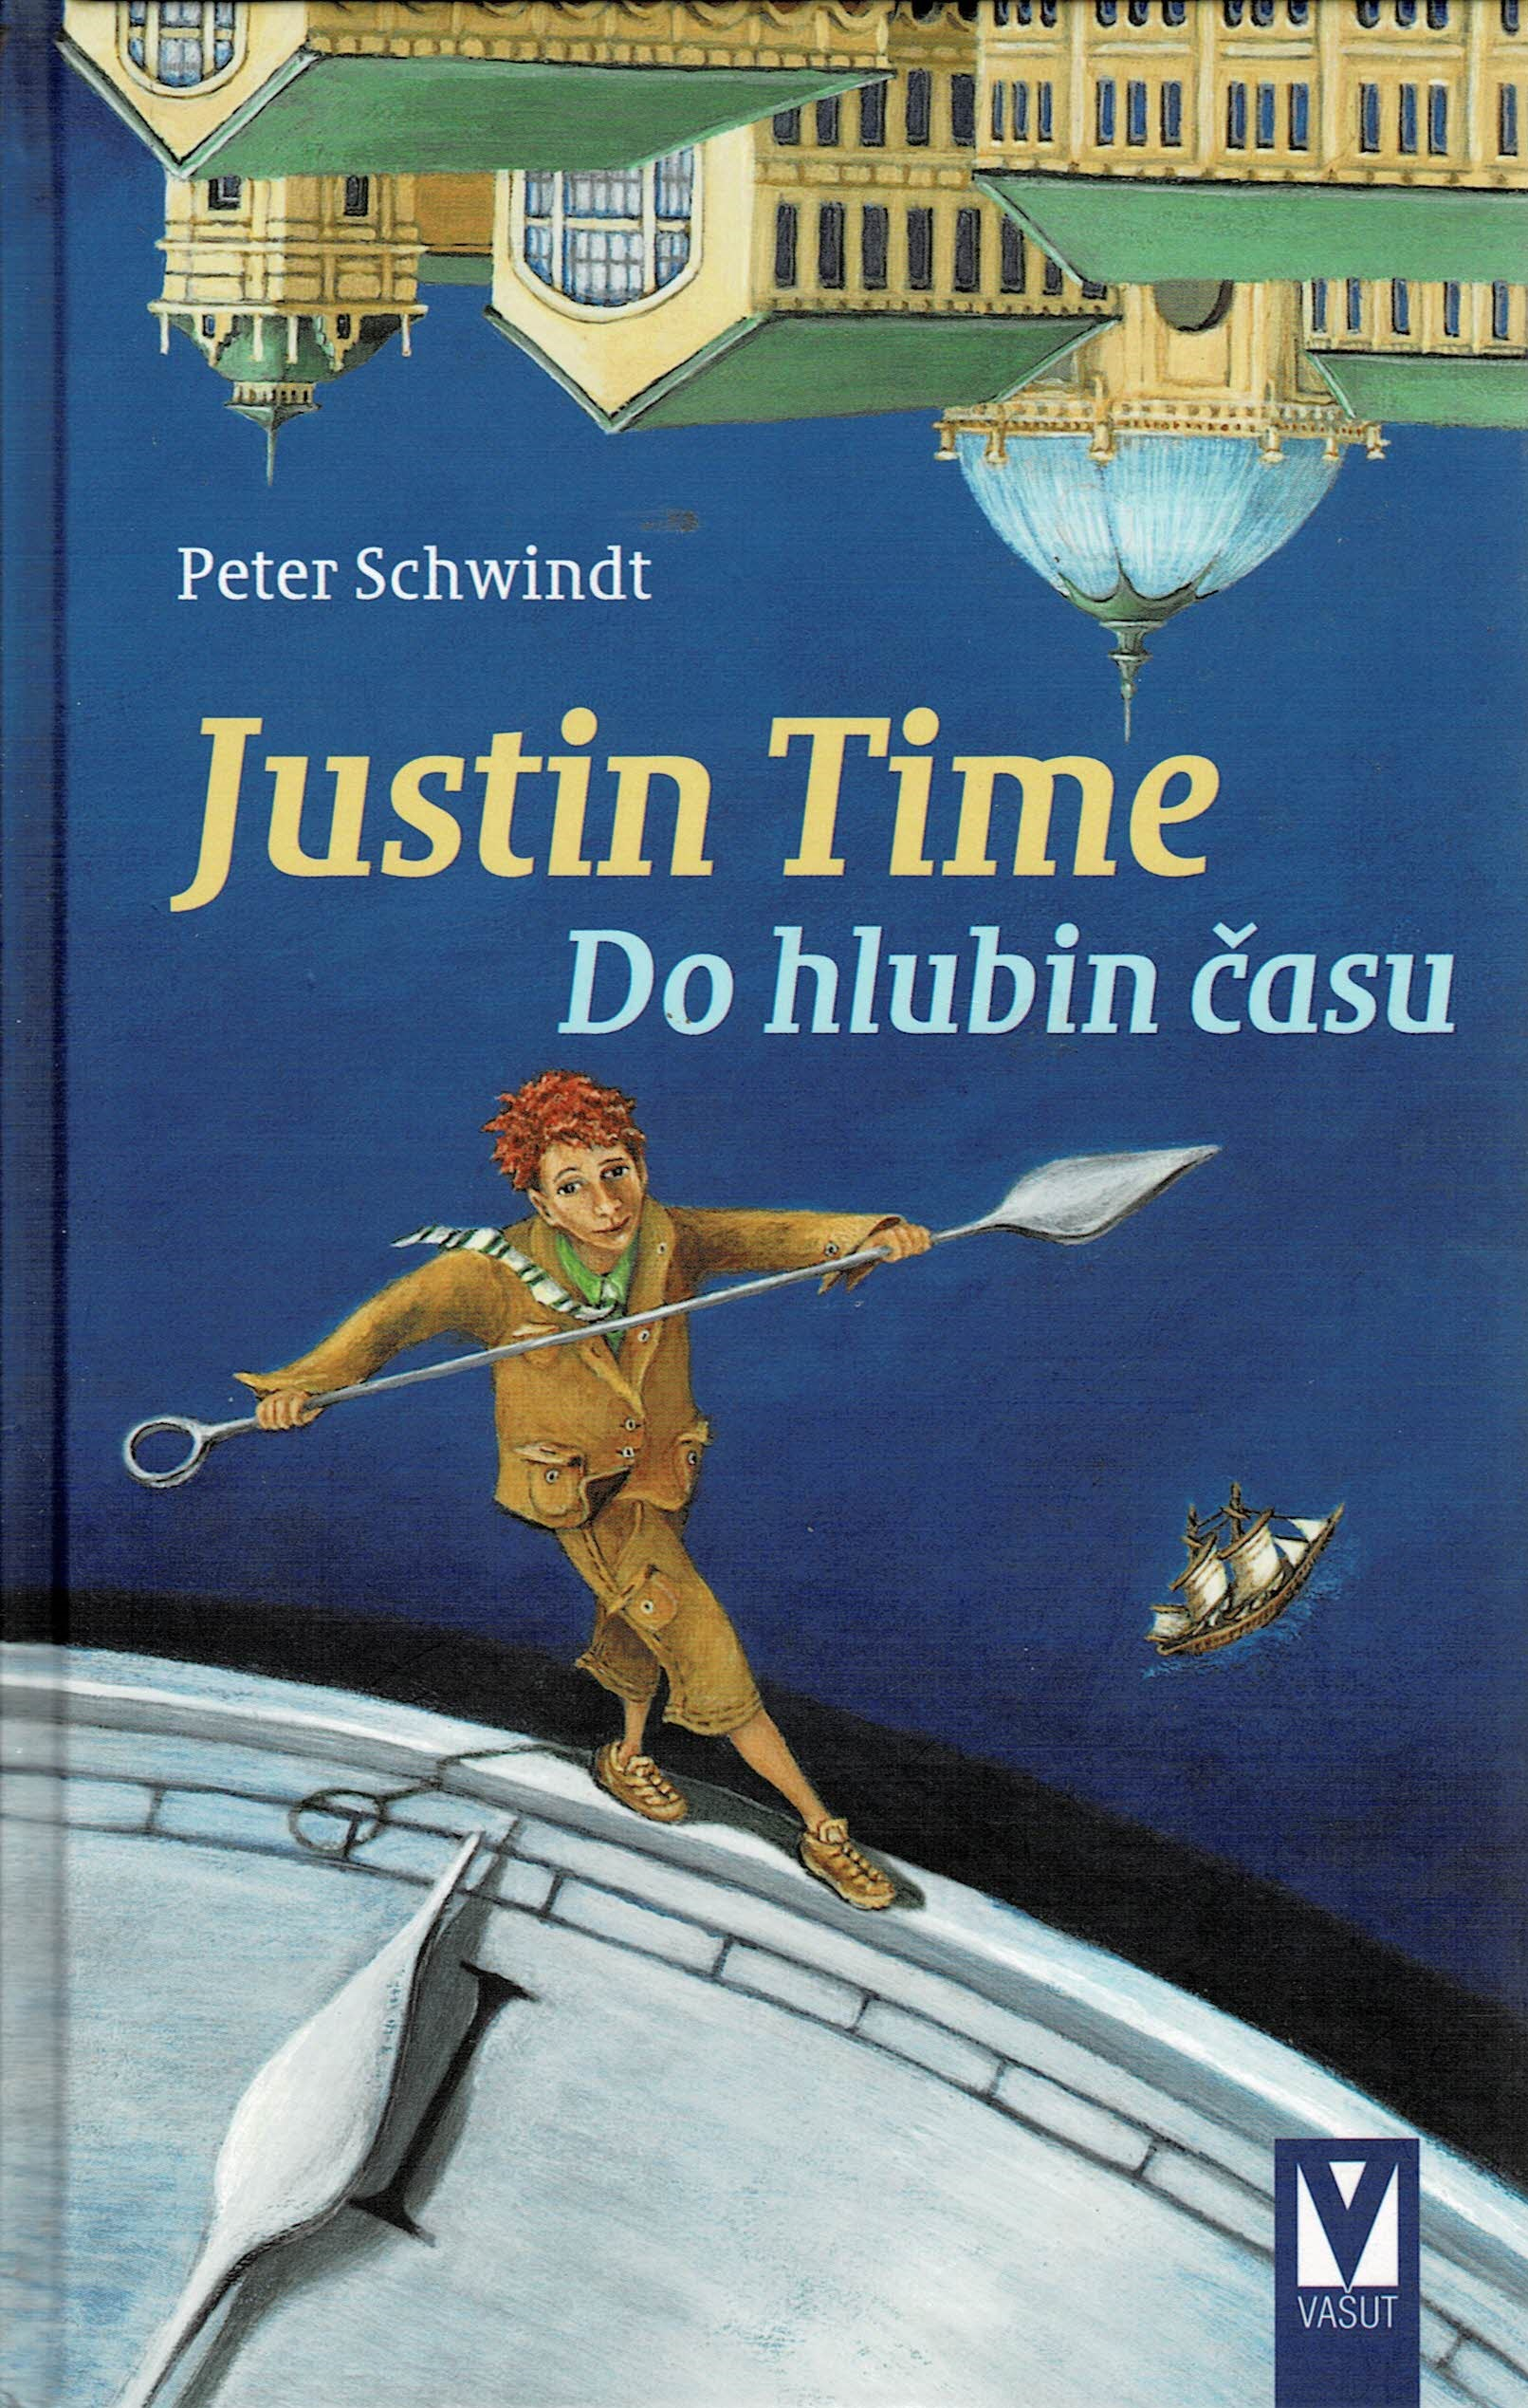 Schwindt, Peter: Justin Time - Do hlubin času